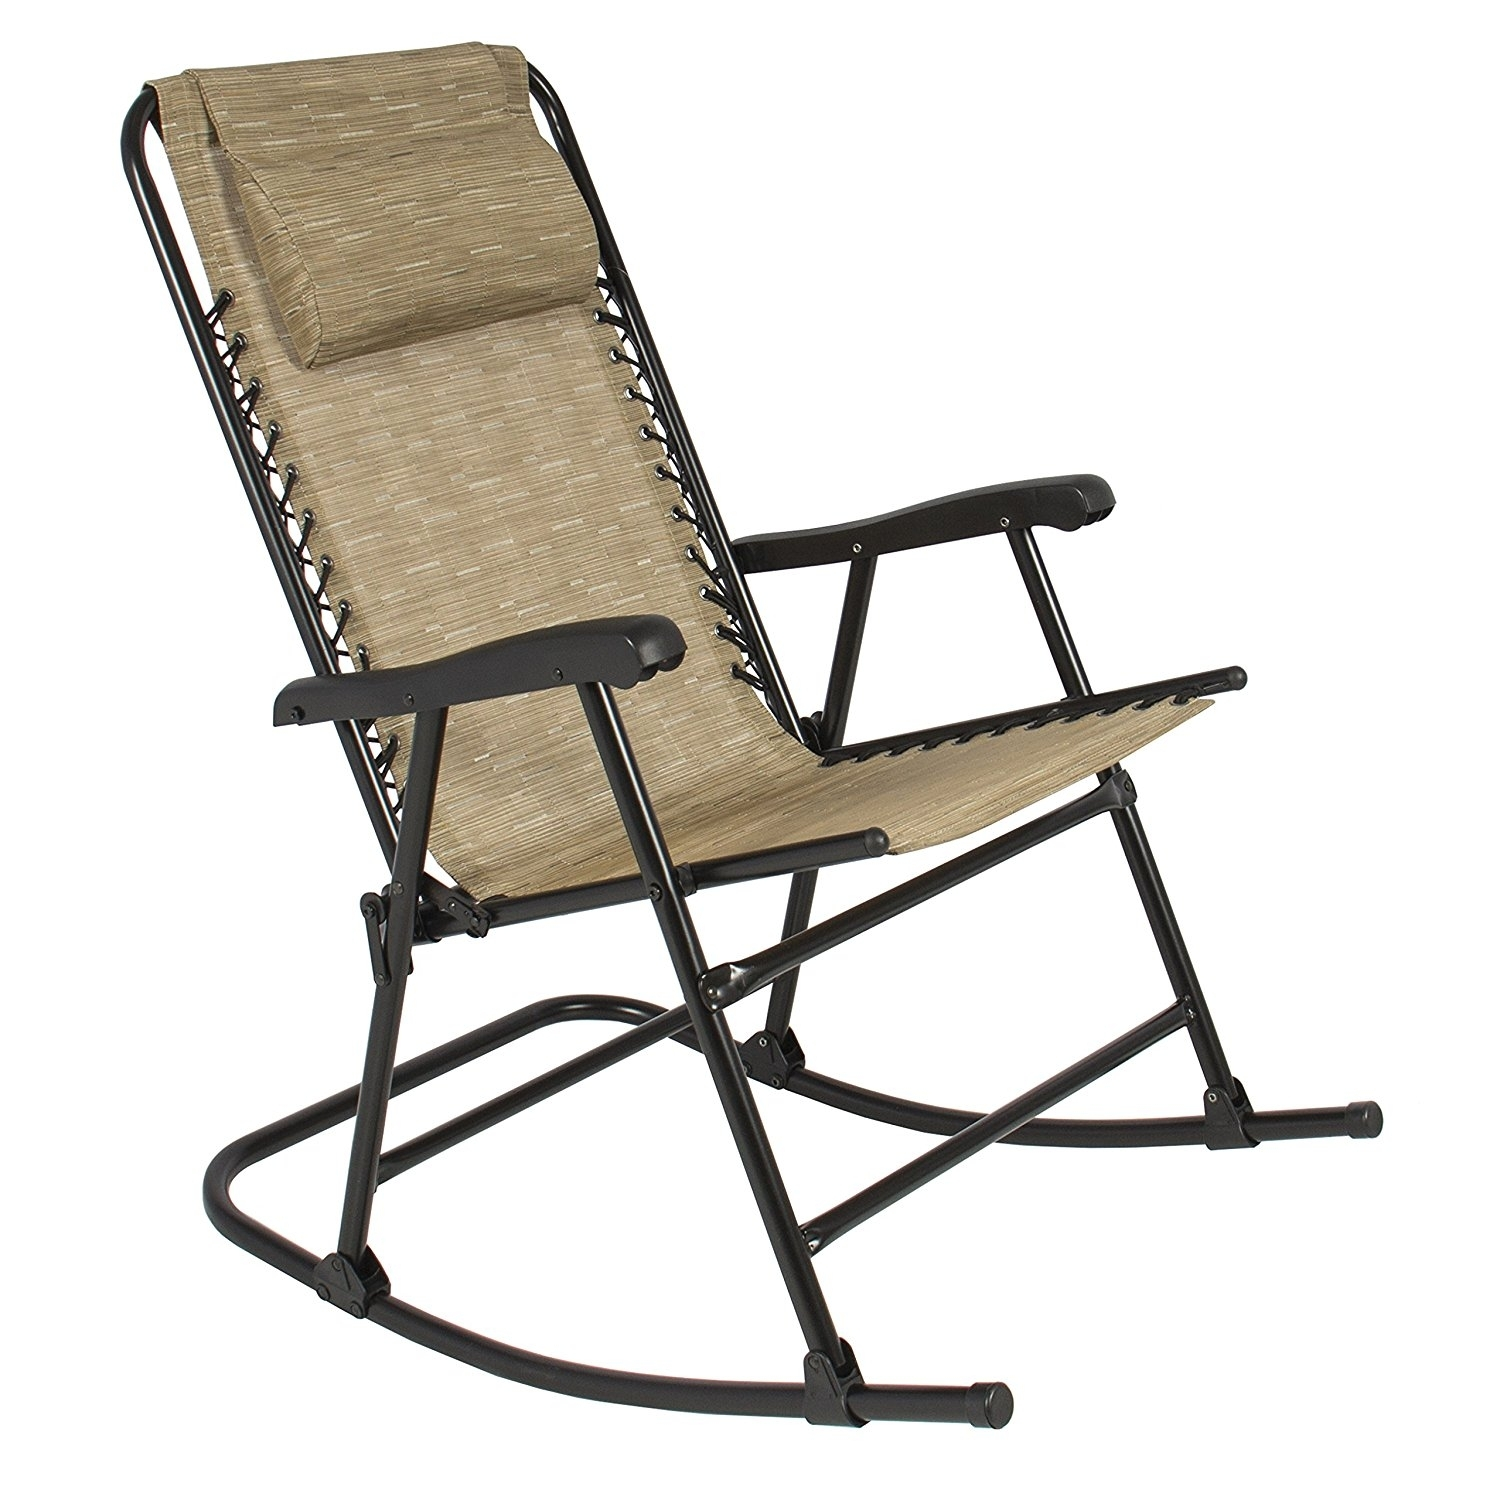 Chairs: Fancy Outdoor Rocking Chair For Your Outdoor Space Within Aluminum Patio Rocking Chairs (View 3 of 15)